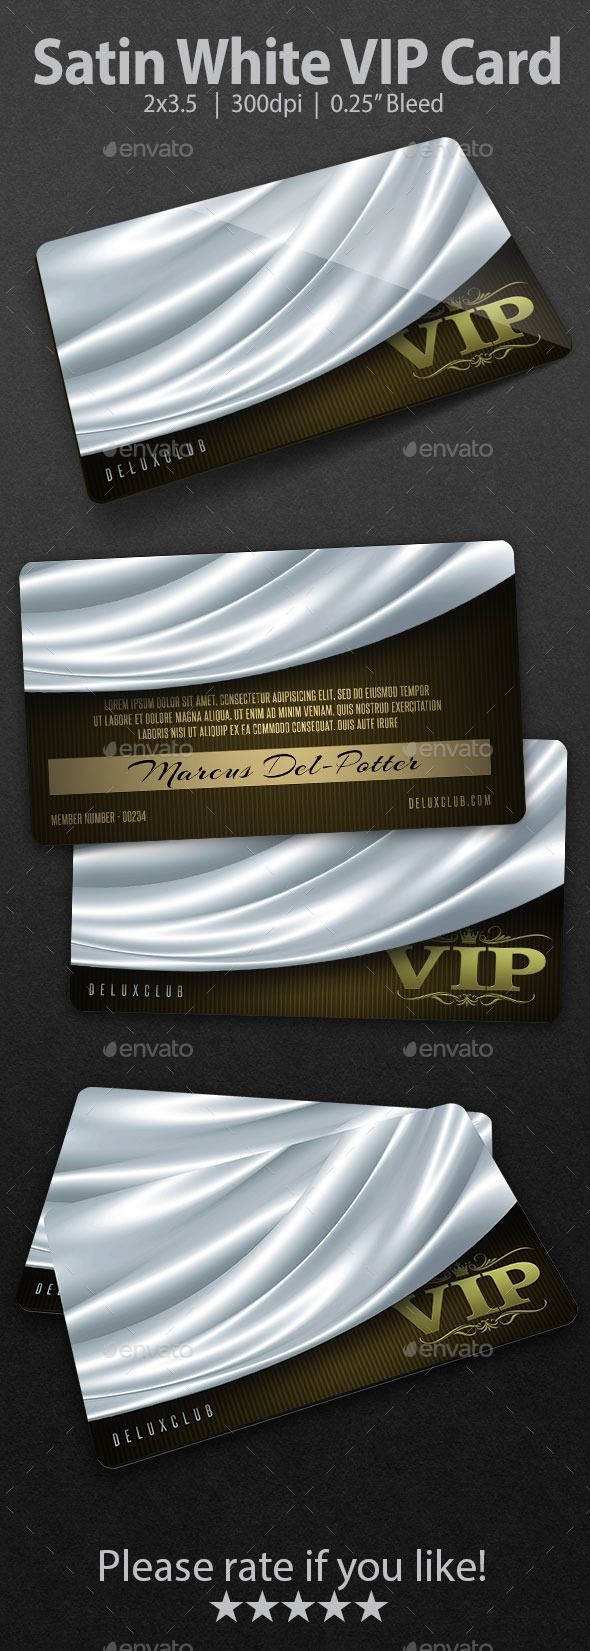 Satin white vip card vip card vip and satin satin white vip card psd template only available here http reheart Choice Image